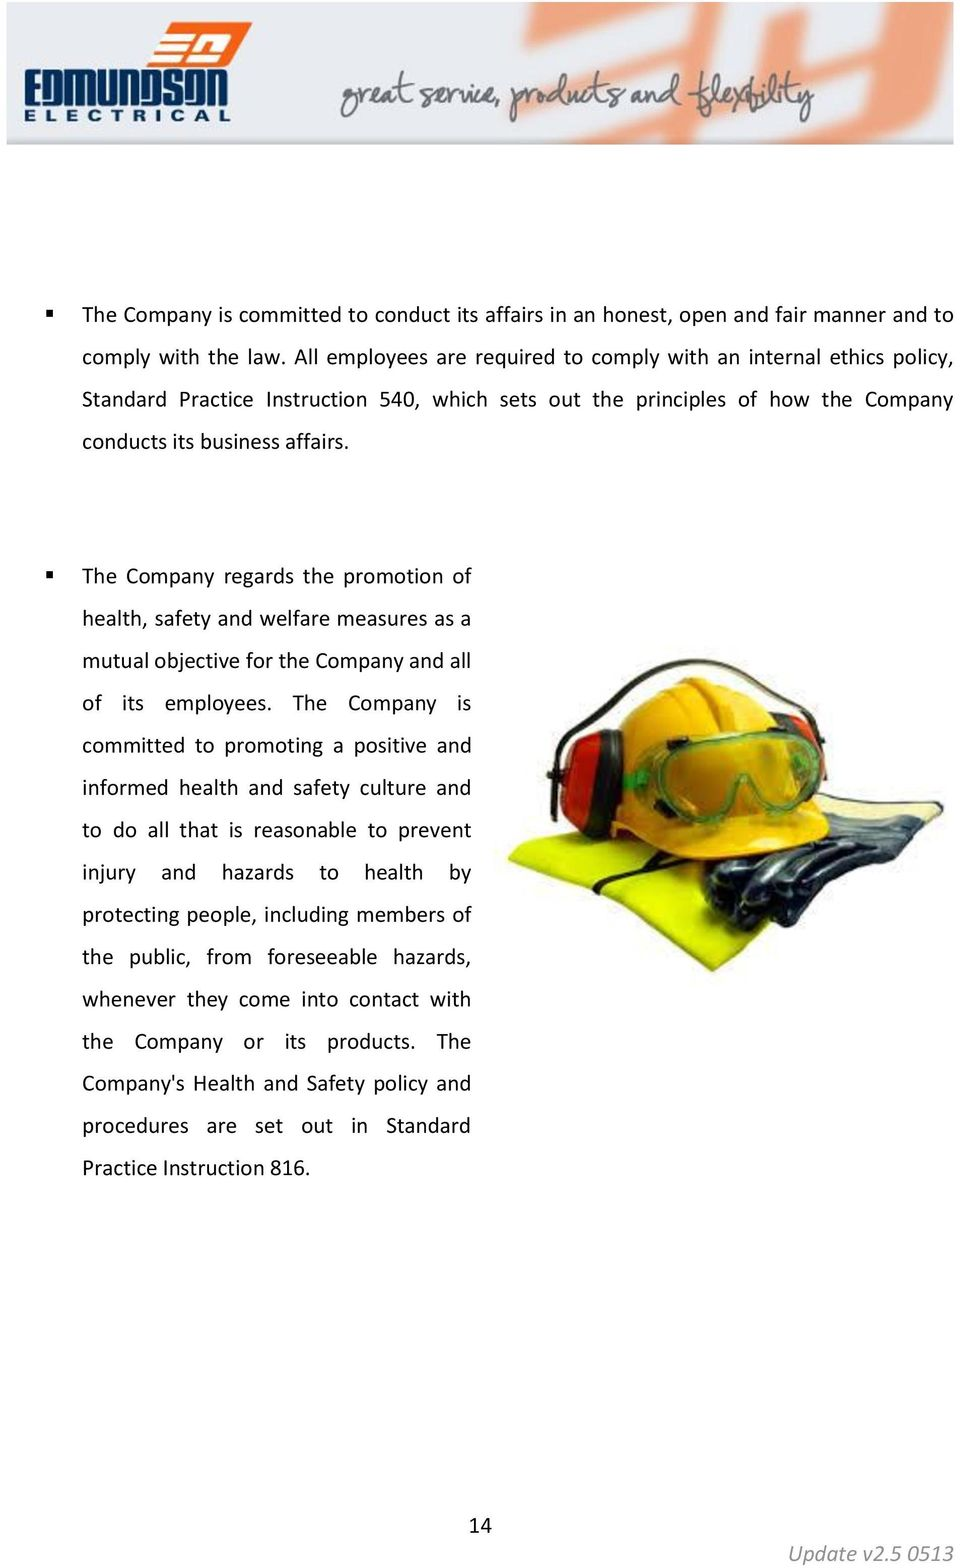 The Company regards the promotion of health, safety and welfare measures as a mutual objective for the Company and all of its employees.